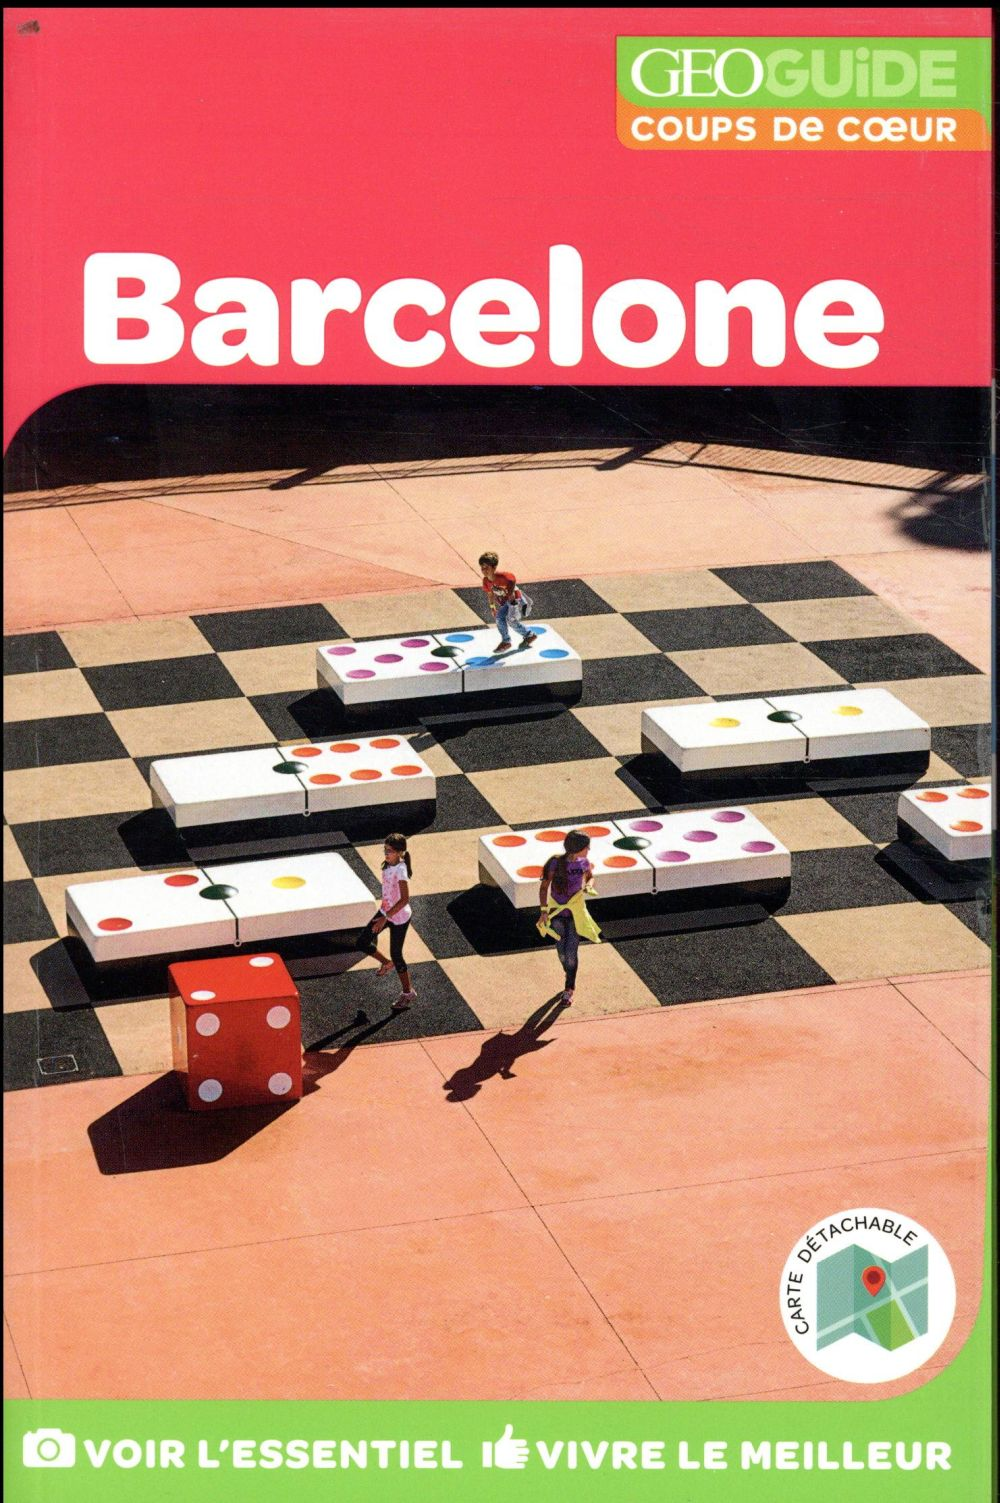 GEOGUIDE COUPS DE COEUR  -  BARCELONE (EDITION 2018) COLLECTIF Gallimard-Loisirs